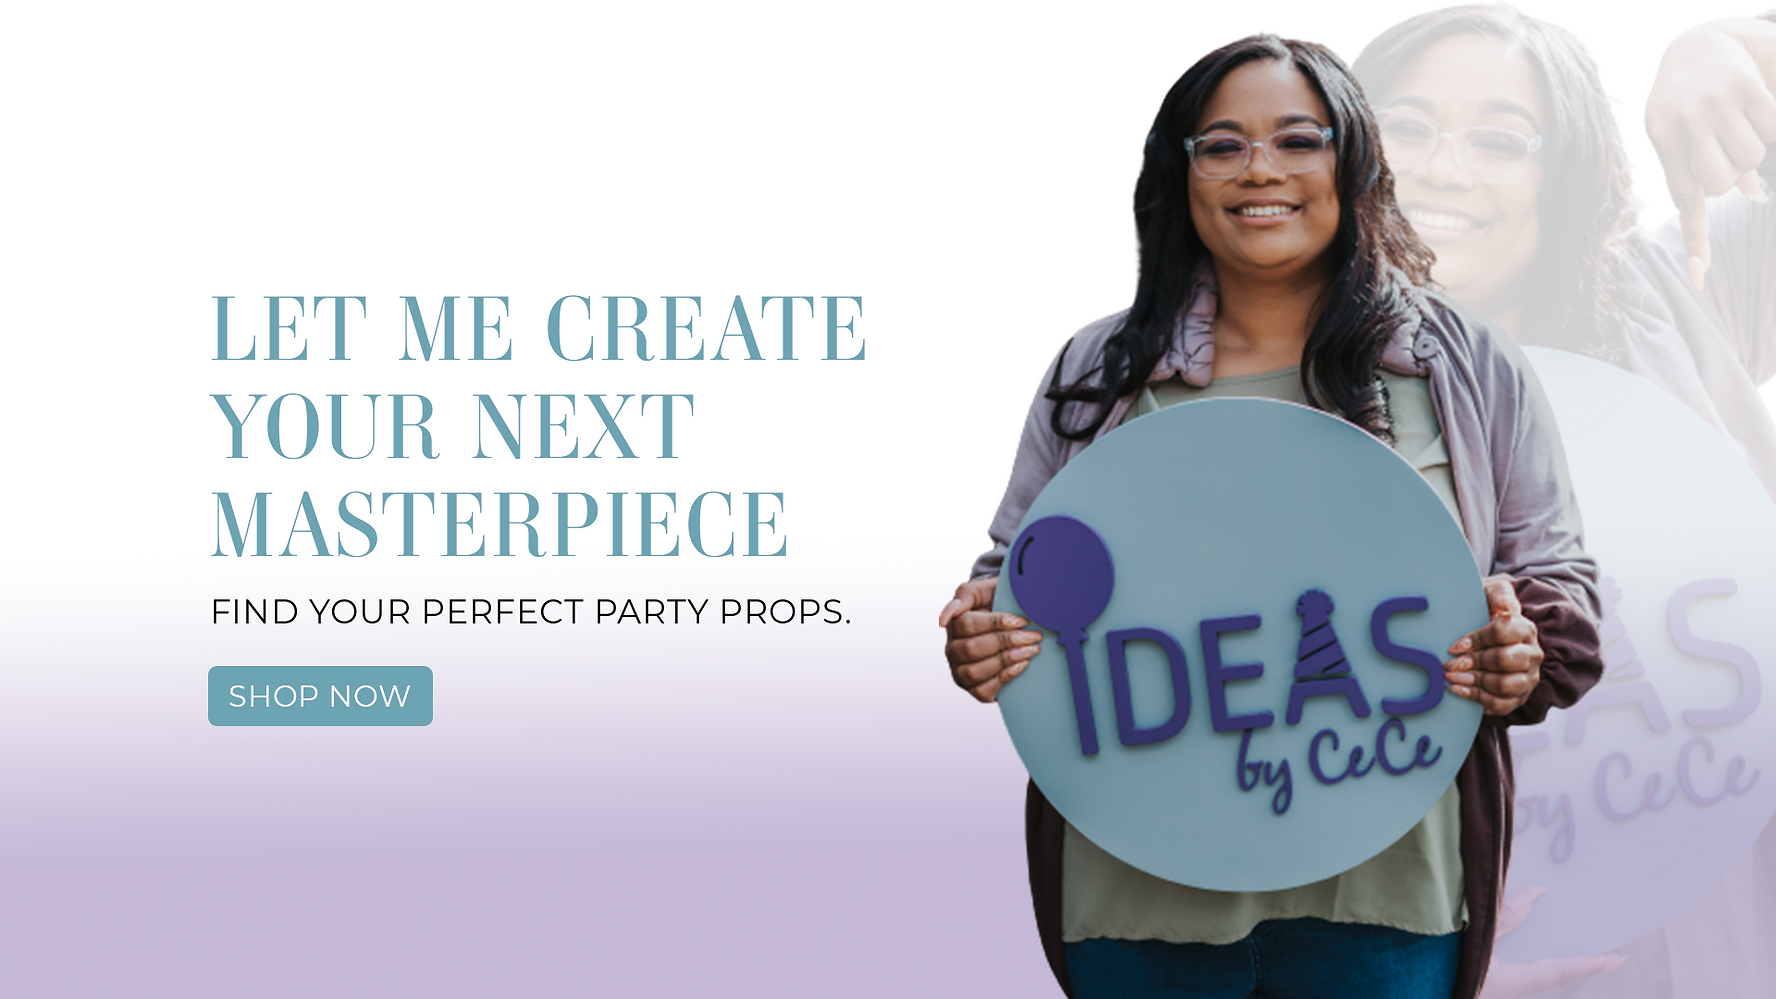 IDEAS BY CECE-BANNER1-revised-v2.png